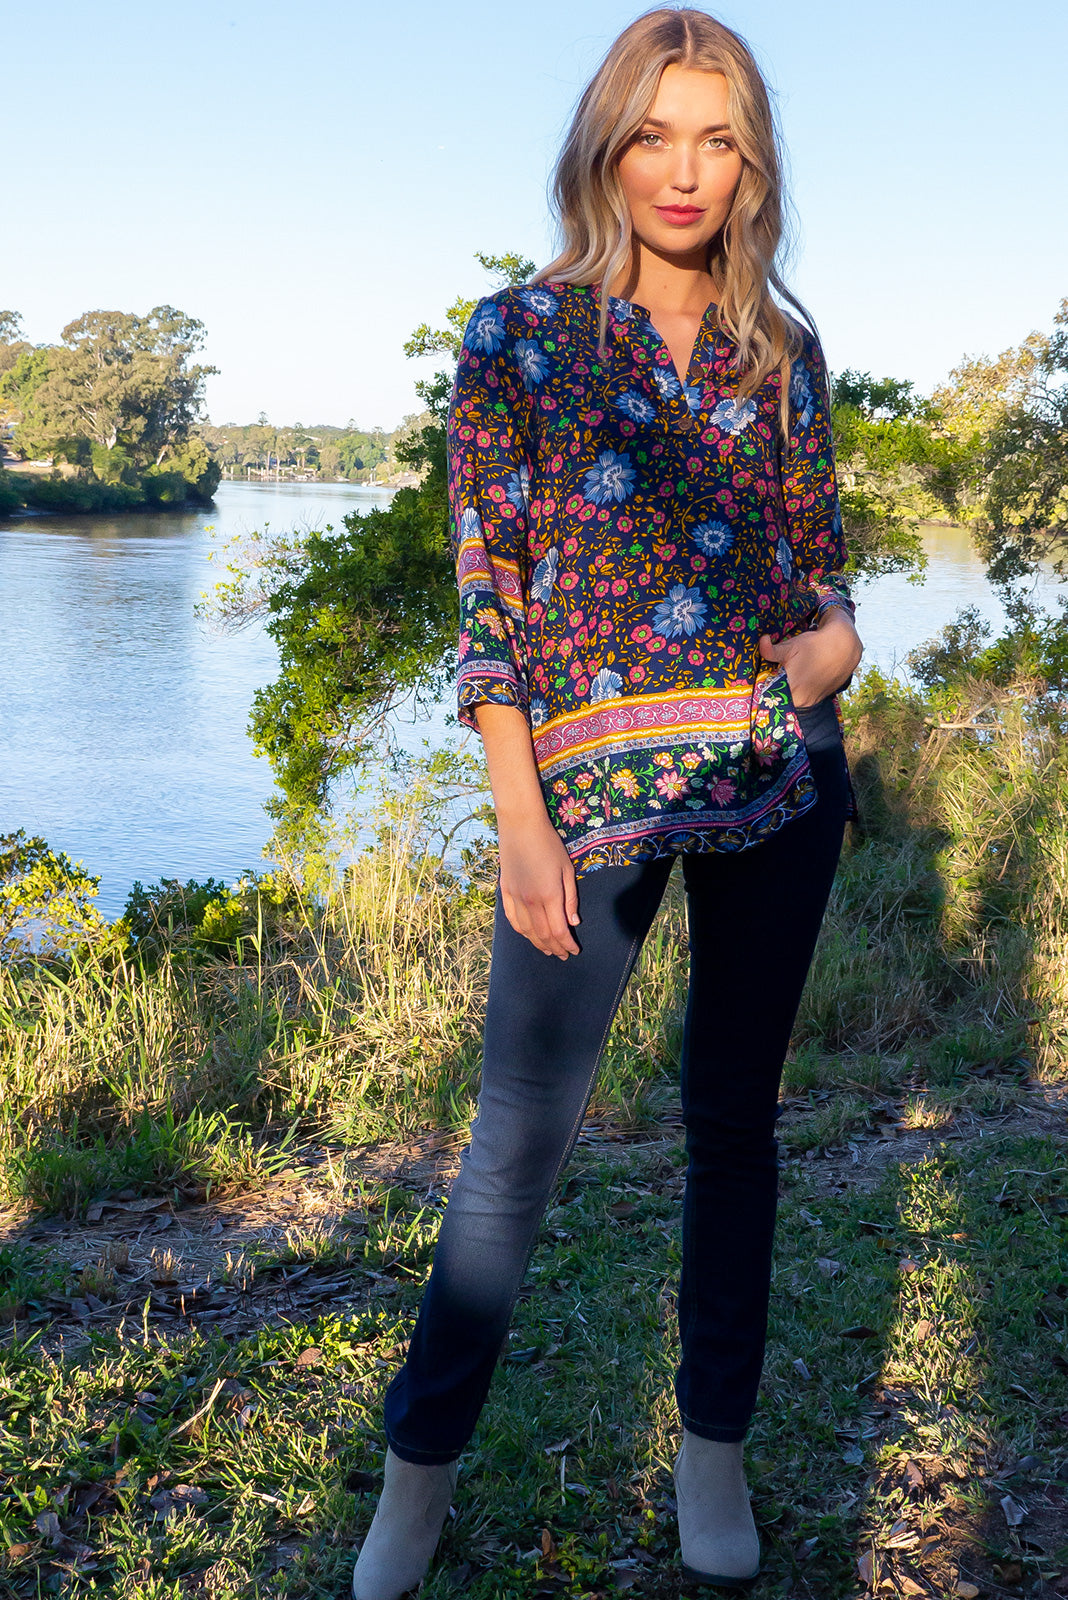 Lotus Dreamland Navy Kaftan Top. Women's bohemian & gypsy inspired navy tunic kaftan top. Suitable for plus size, curvy, petite, tall, maternity or nursing. Long flowing sleeves. Navy fabric, floral pattern of blue pink green and gold. Perfect for autumn, winter/ summer nights. Perfect day, festival, holiday, dress. Designed in Brisbane Australia.